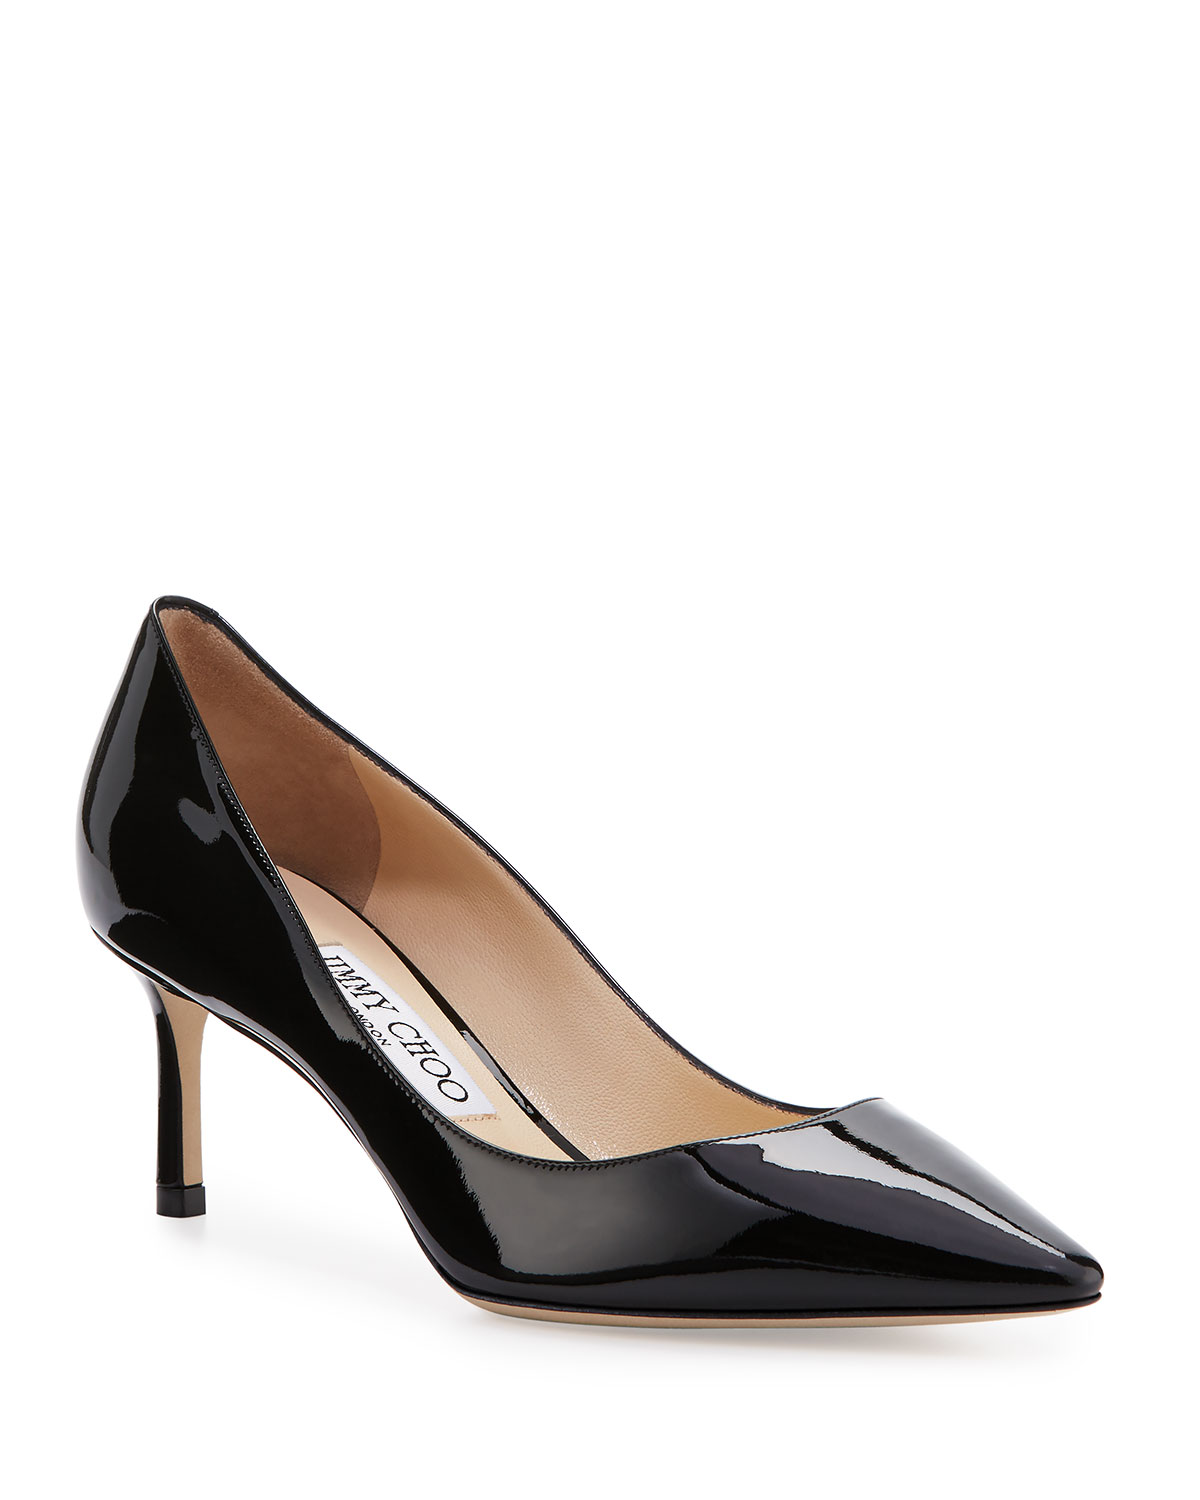 4dd4c9de1 Jimmy Choo Romy 60mm Patent Pointed-Toe Pumps, Black | Neiman Marcus